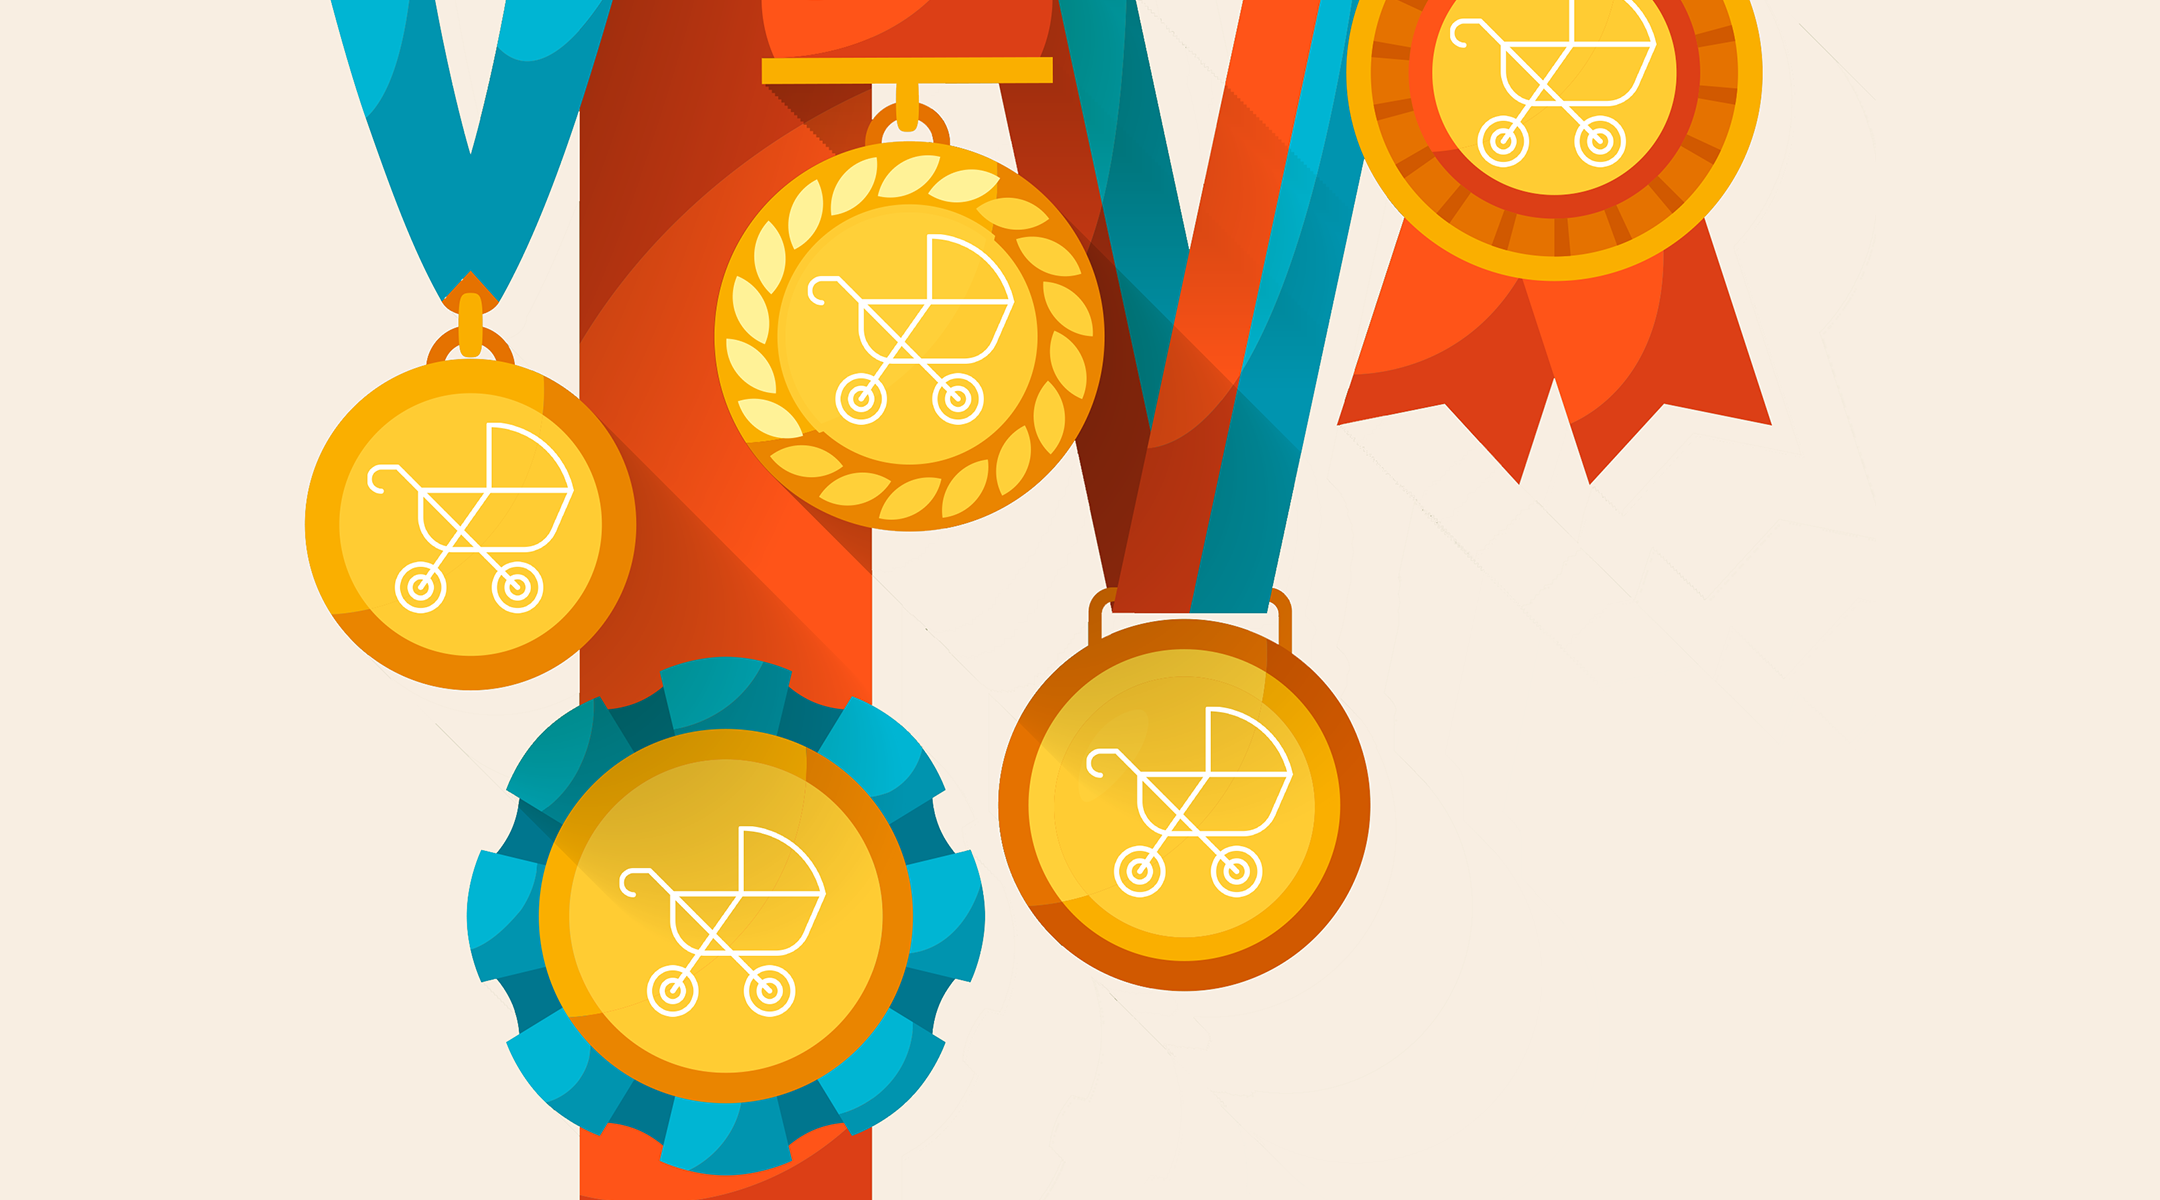 5 illustrated medals with stroller icon on each